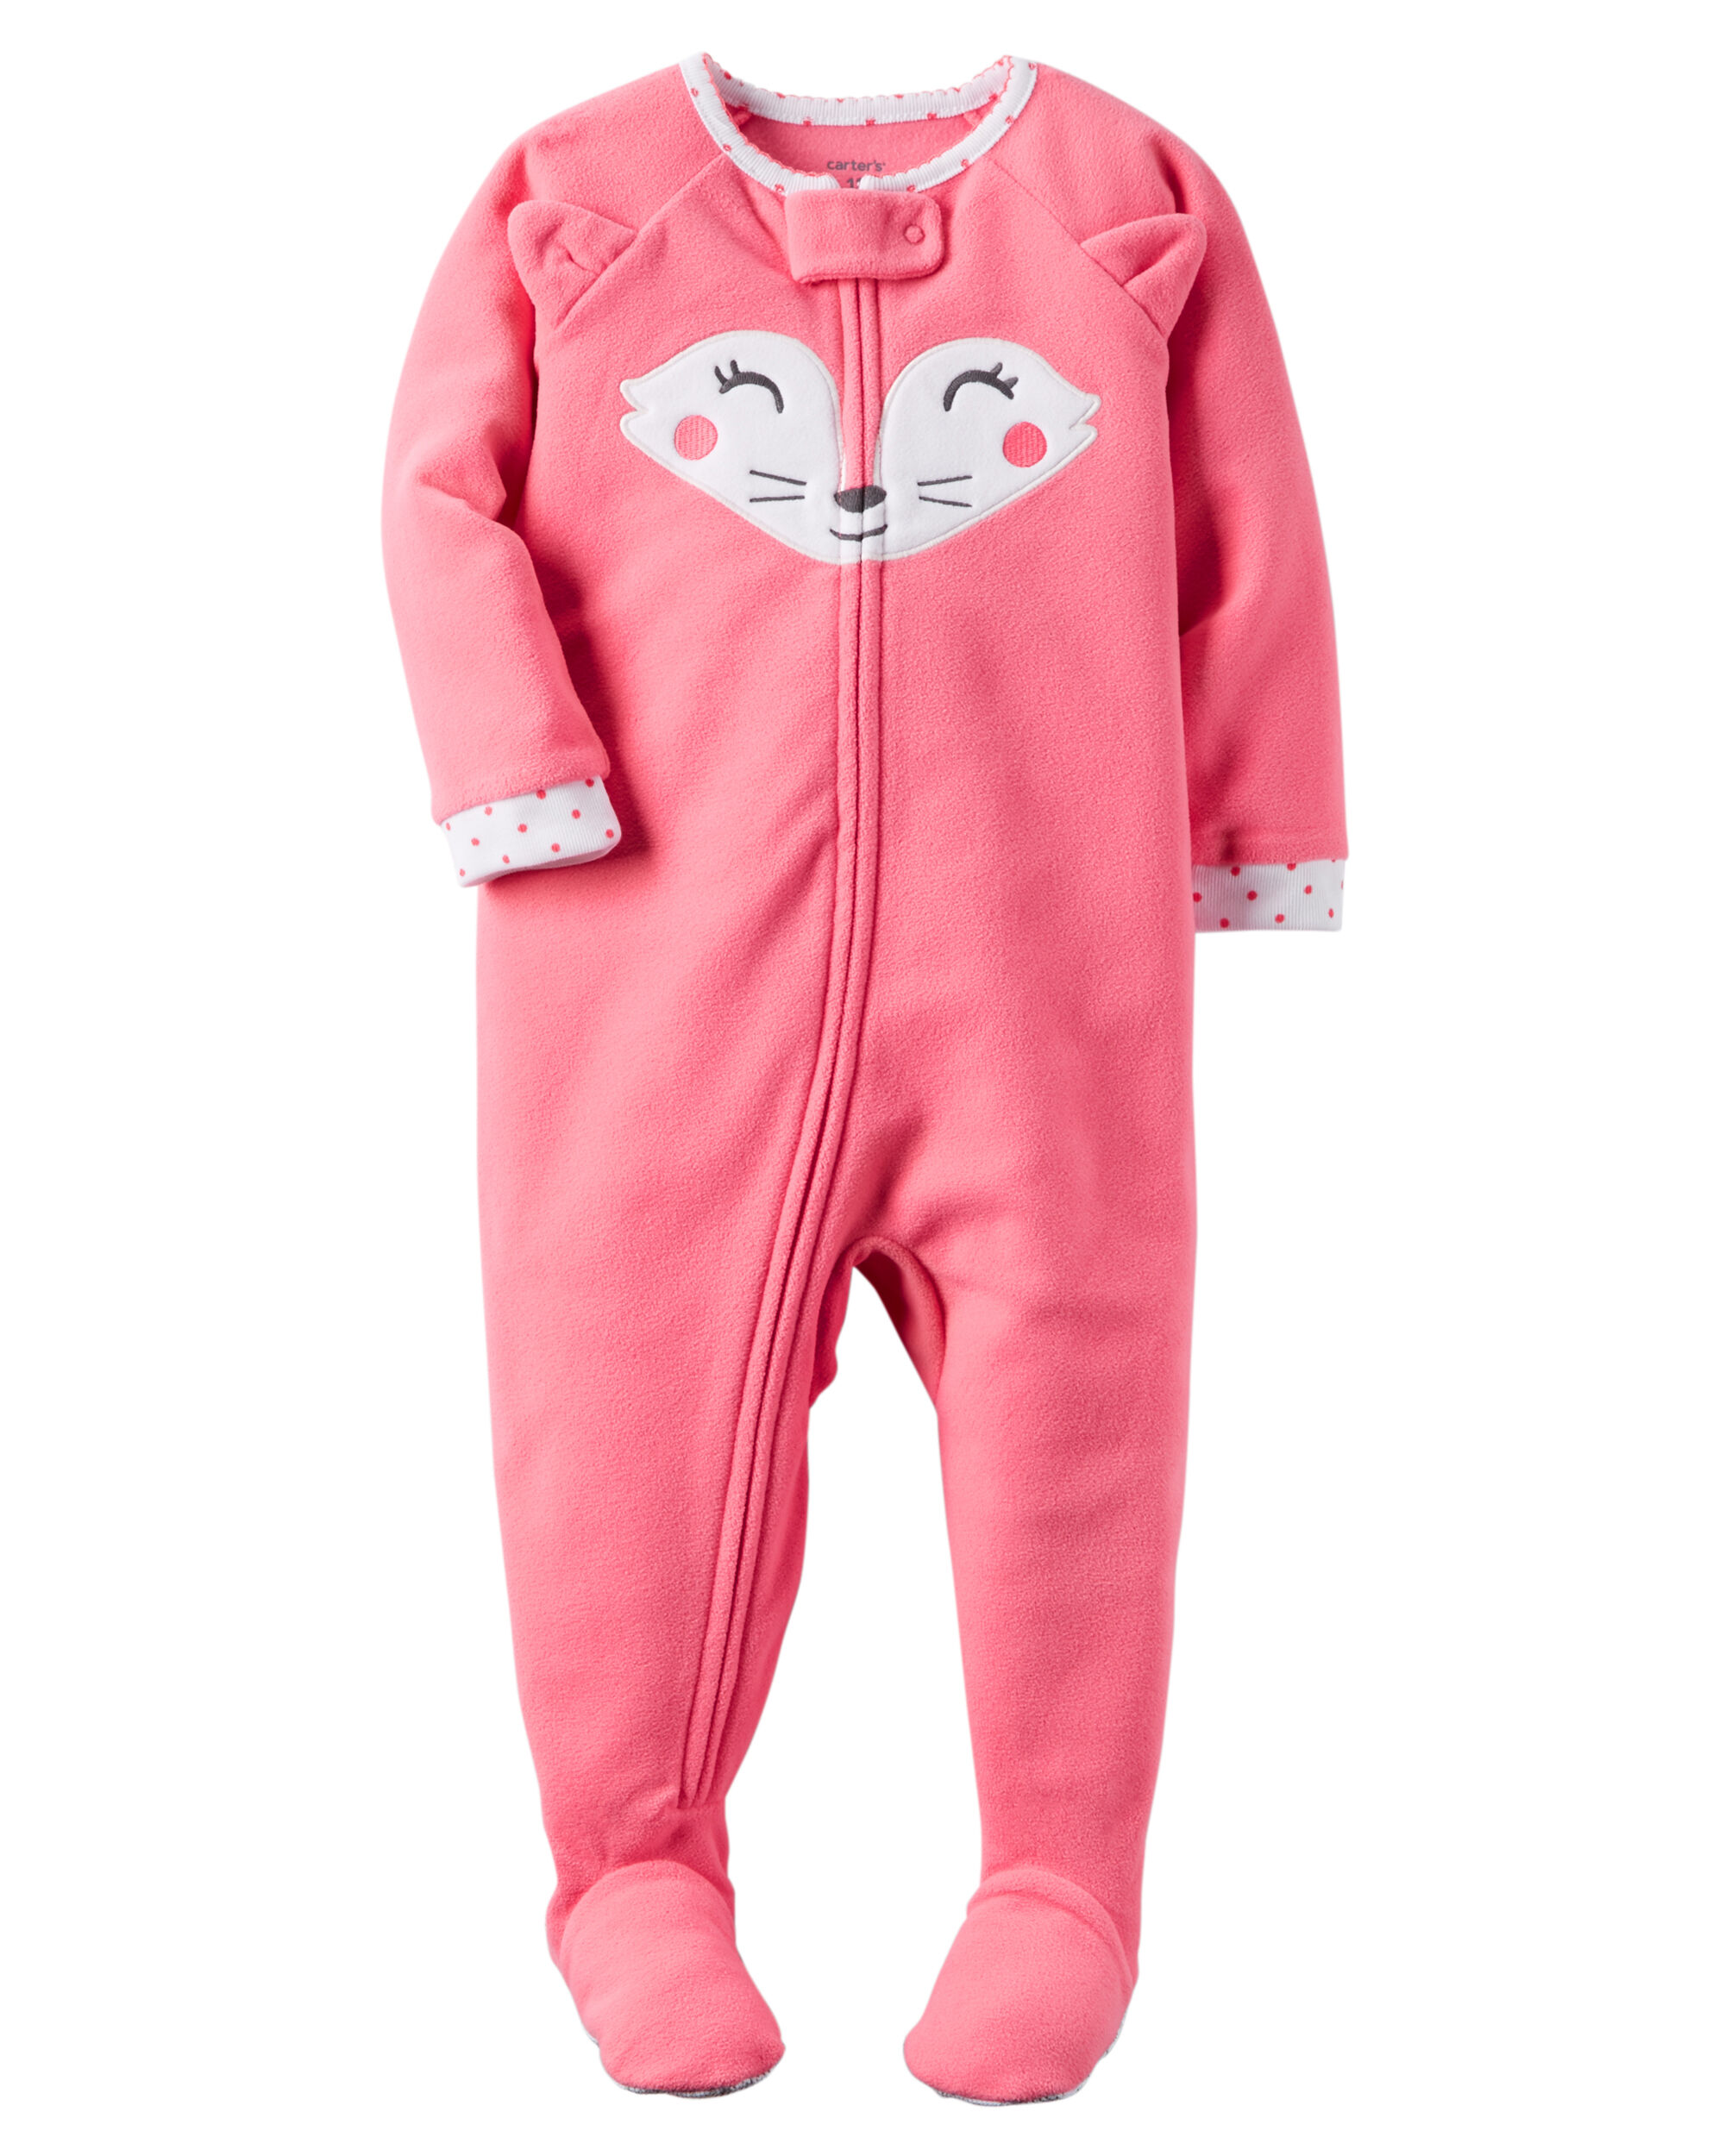 one cotton fit piece footless zoom v baby loading carters girl sleepers snug pjs sleeper